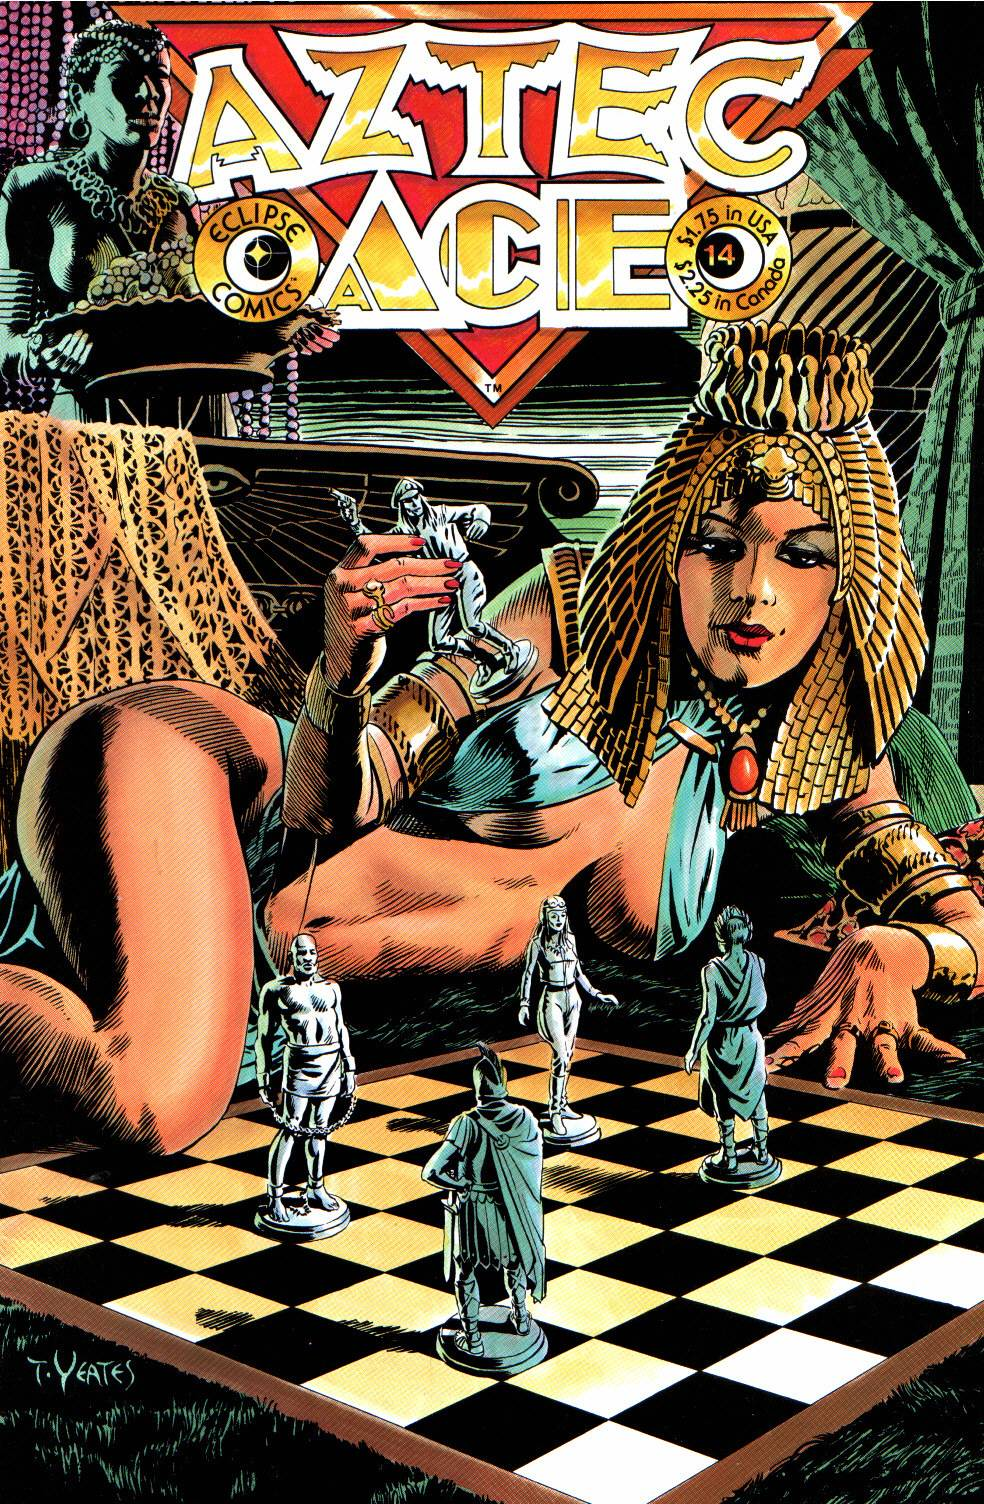 Read online Aztec Ace comic -  Issue #14 - 1